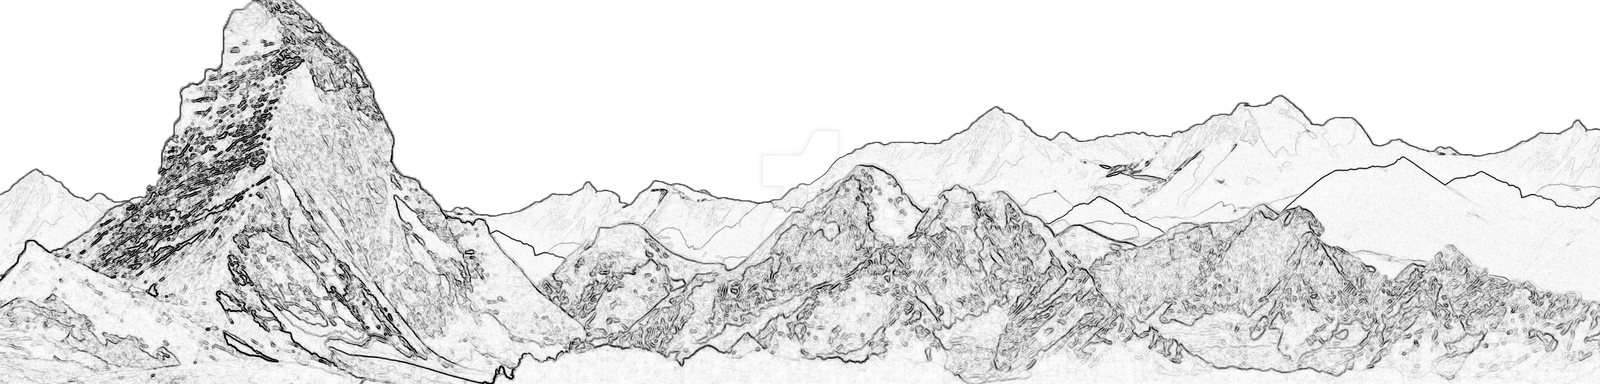 Line Drawing Mountain : Mountains lineart by cookiegirl on deviantart